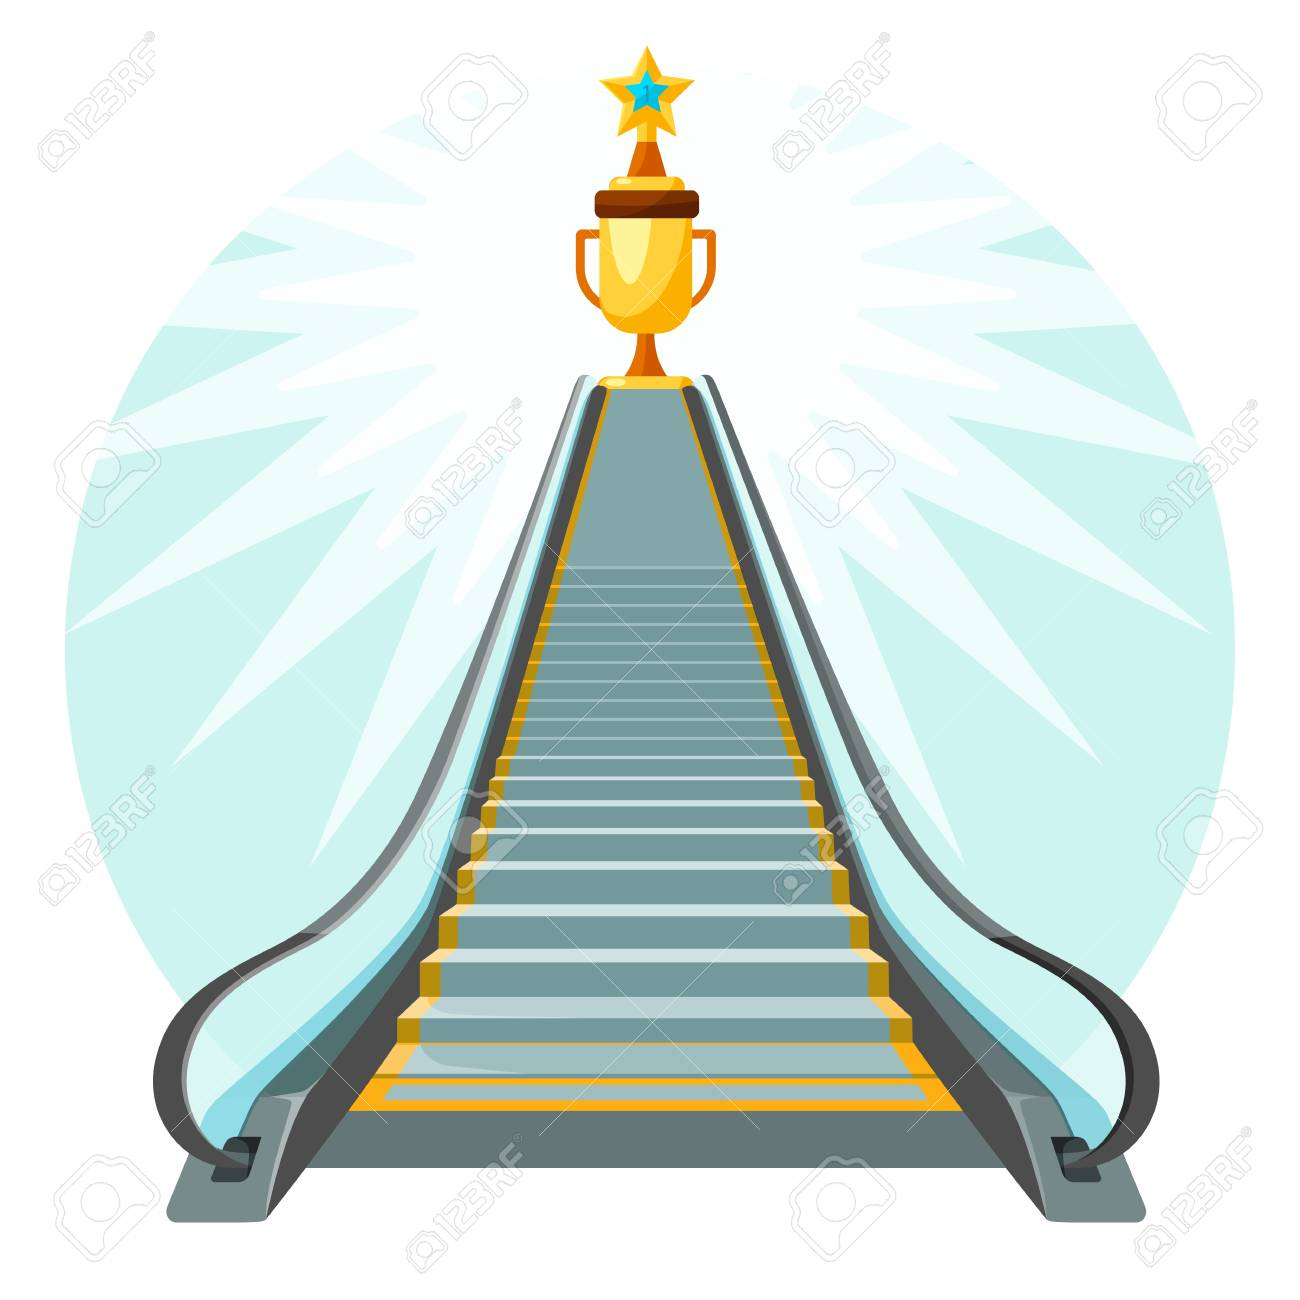 Way to success conceptual poster with escalator moving up stairs - 100075452